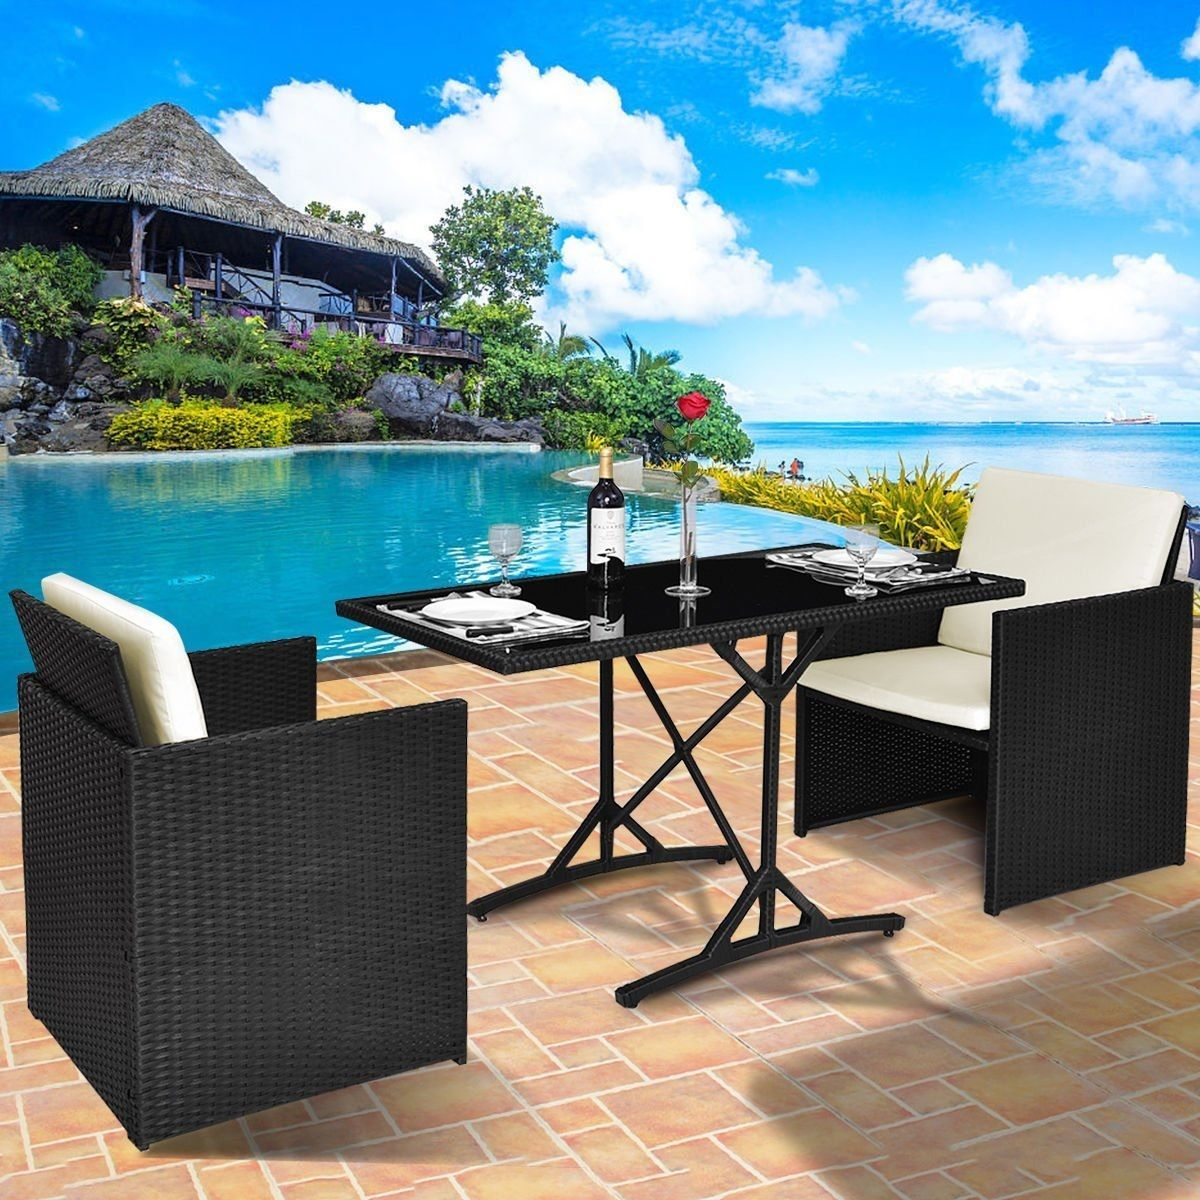 Outdoor Wicker Patio Furniture! We Love Wicker Furniture Outside On A  Patio, Balcony,